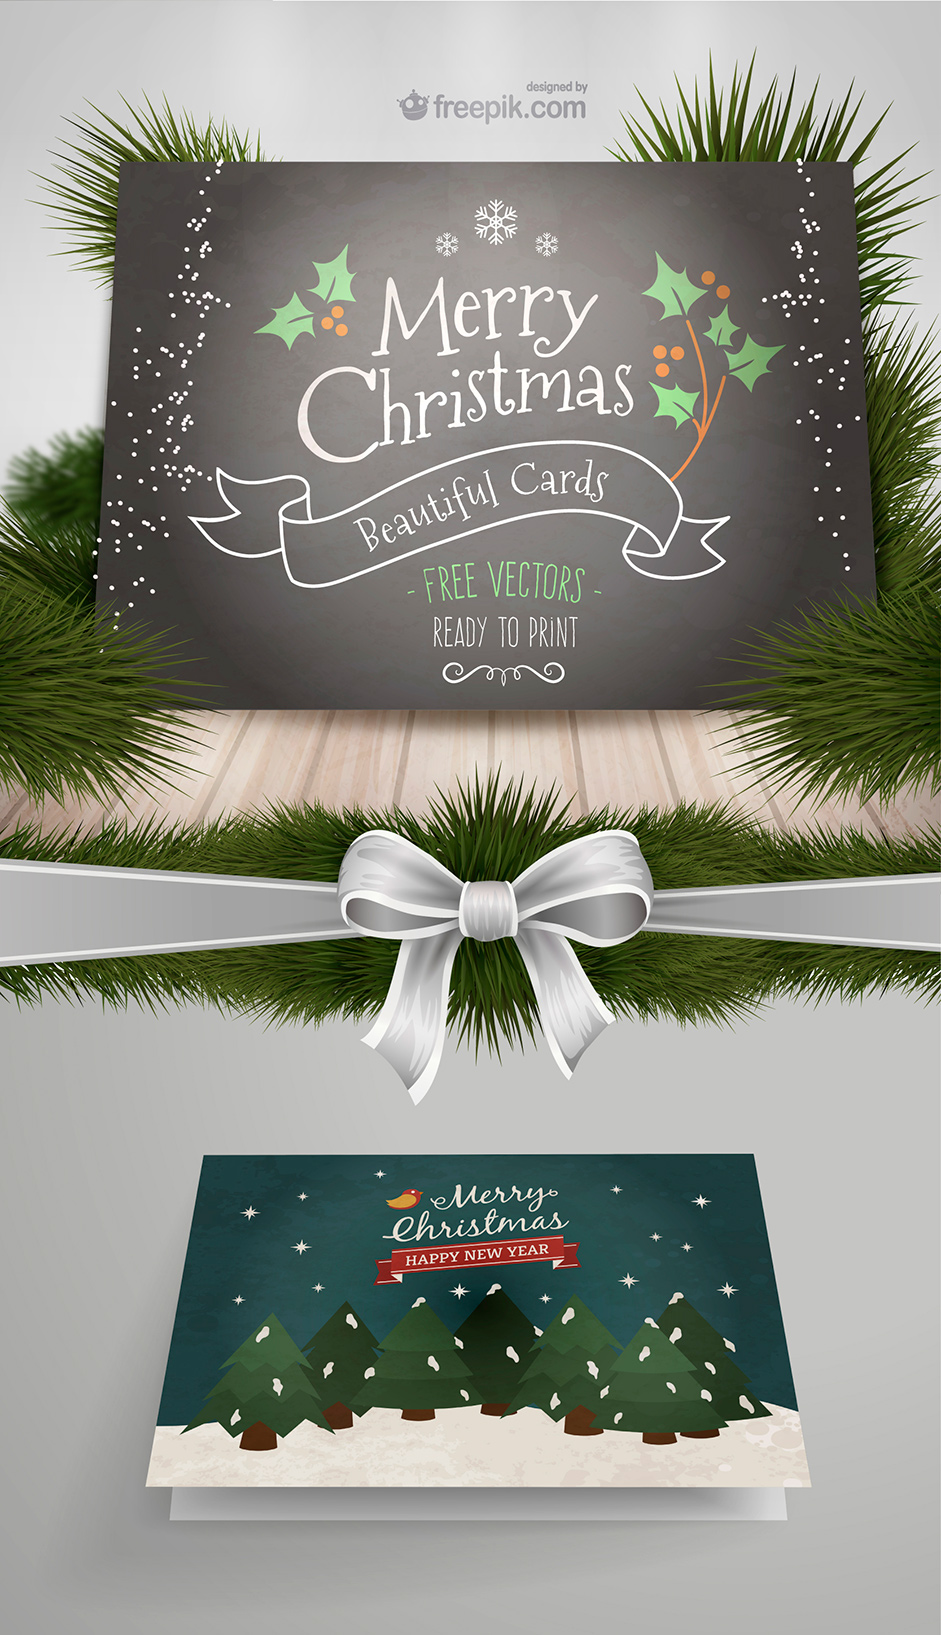 10 New Xmas Cards from Freepik and More Free Resources for your ...